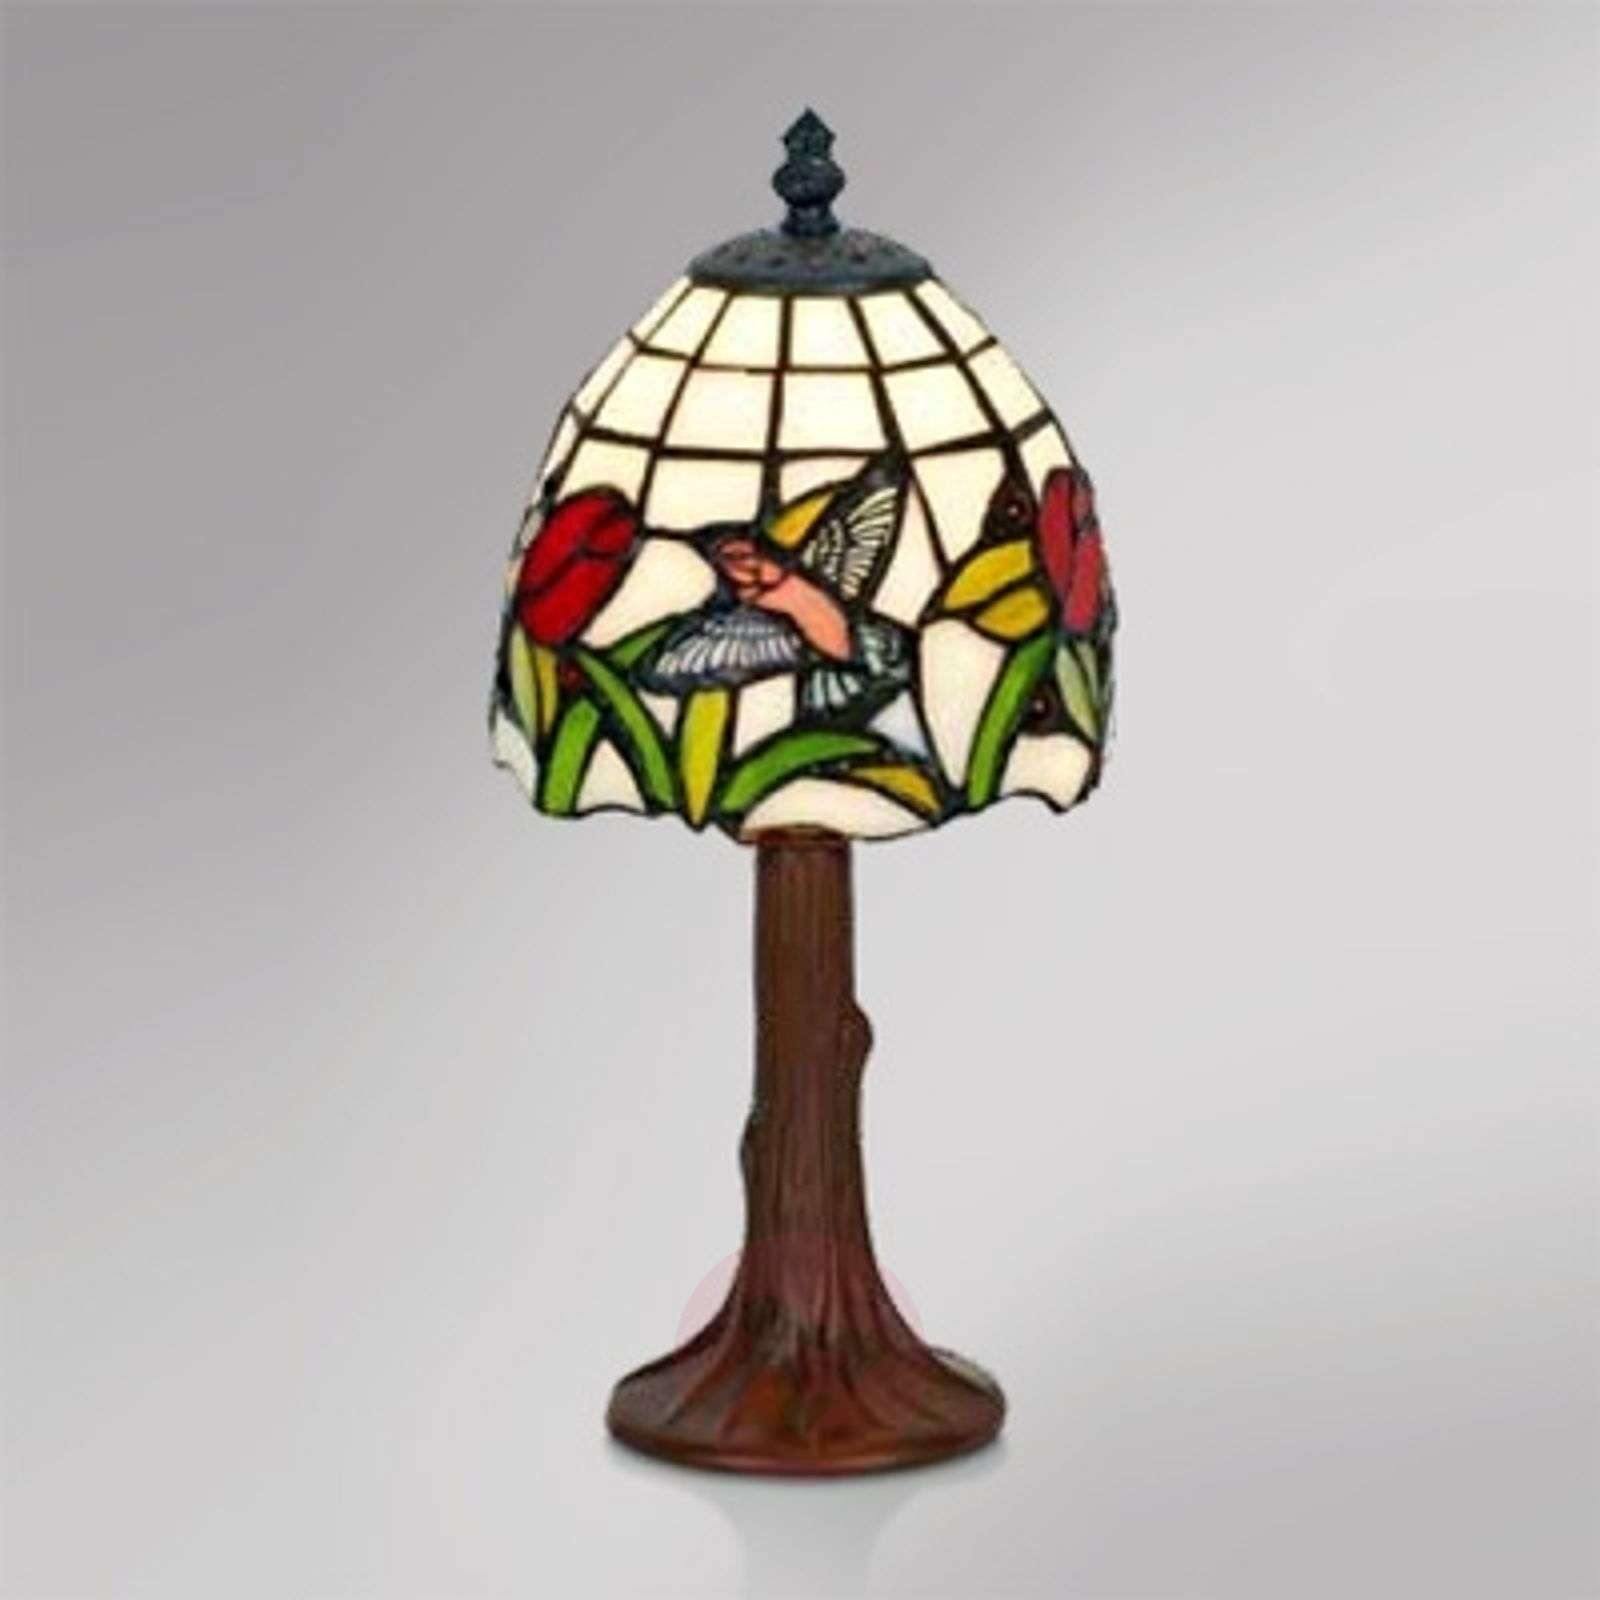 Small table lamp Lesly, Tiffany design-1032265-01